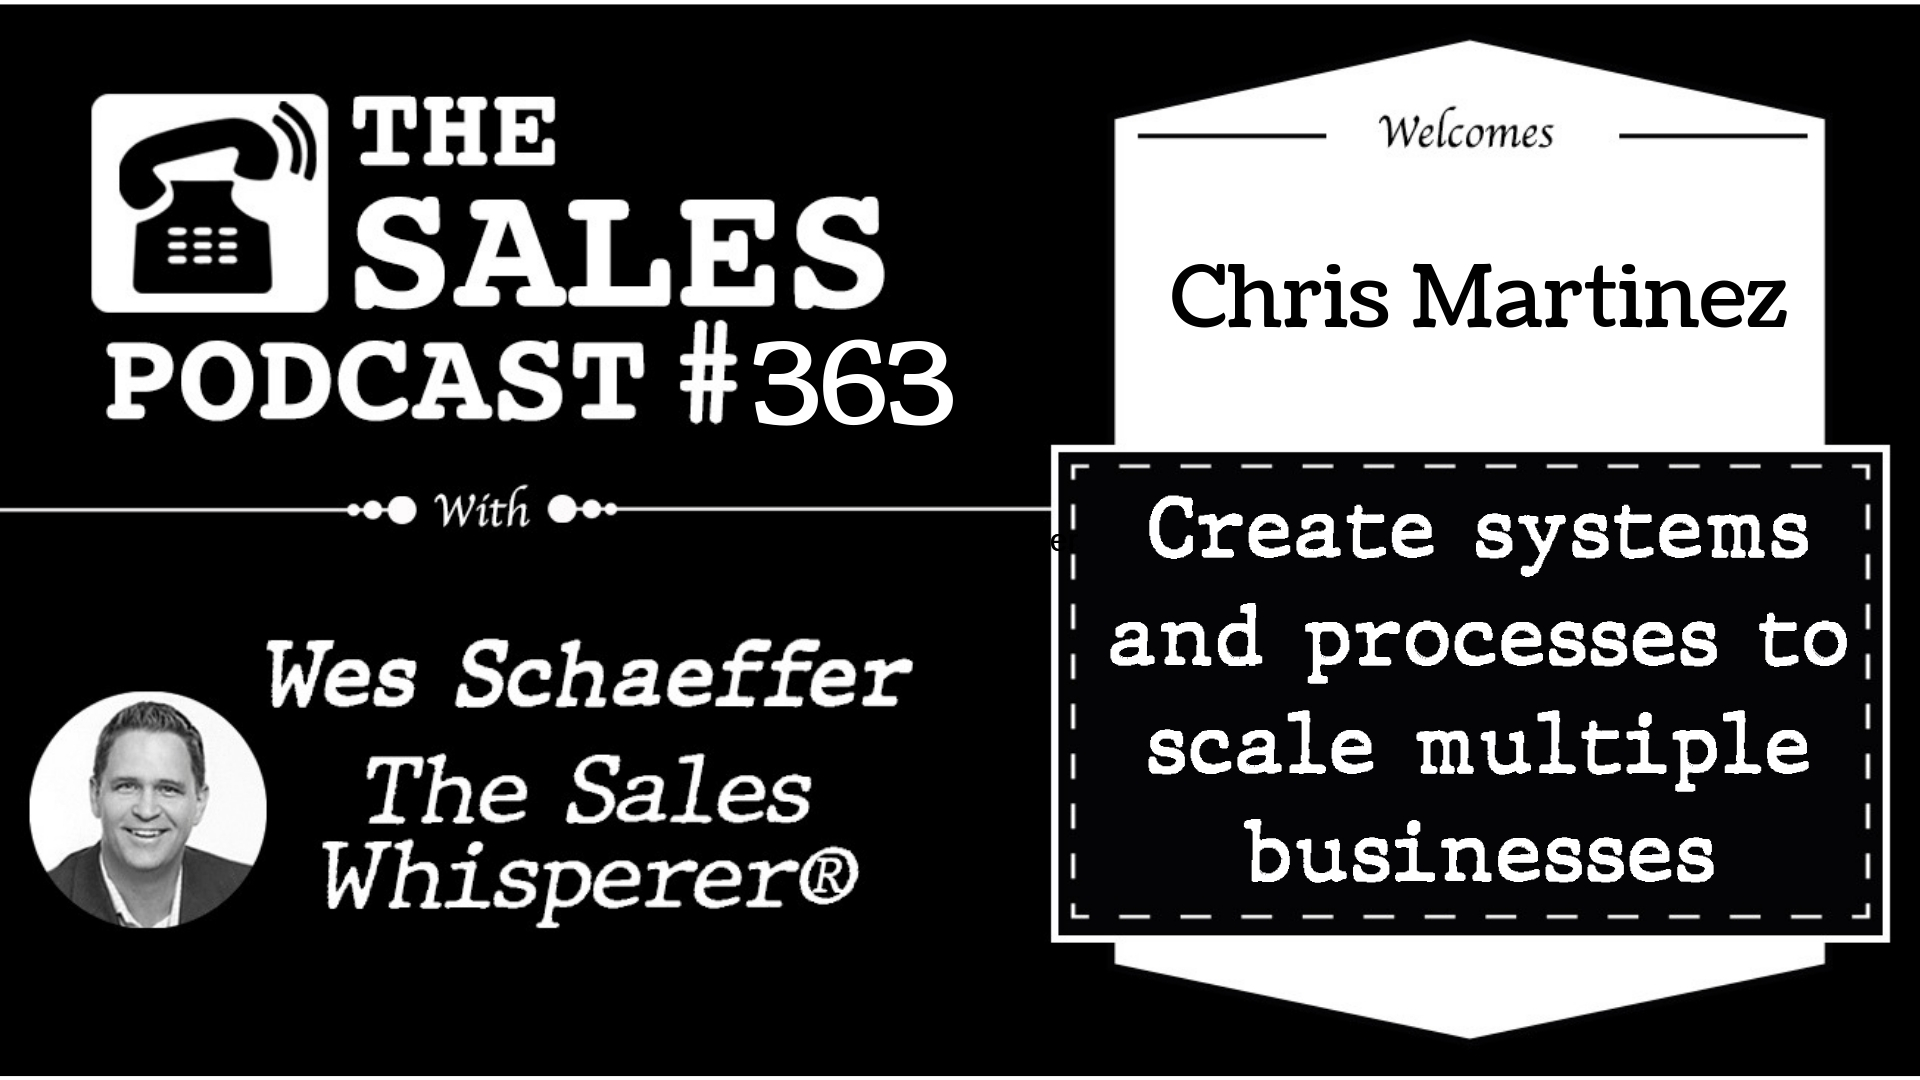 The Dude, Chris Martinez, Talks About Growing His Sales...With a Wrestling Mask